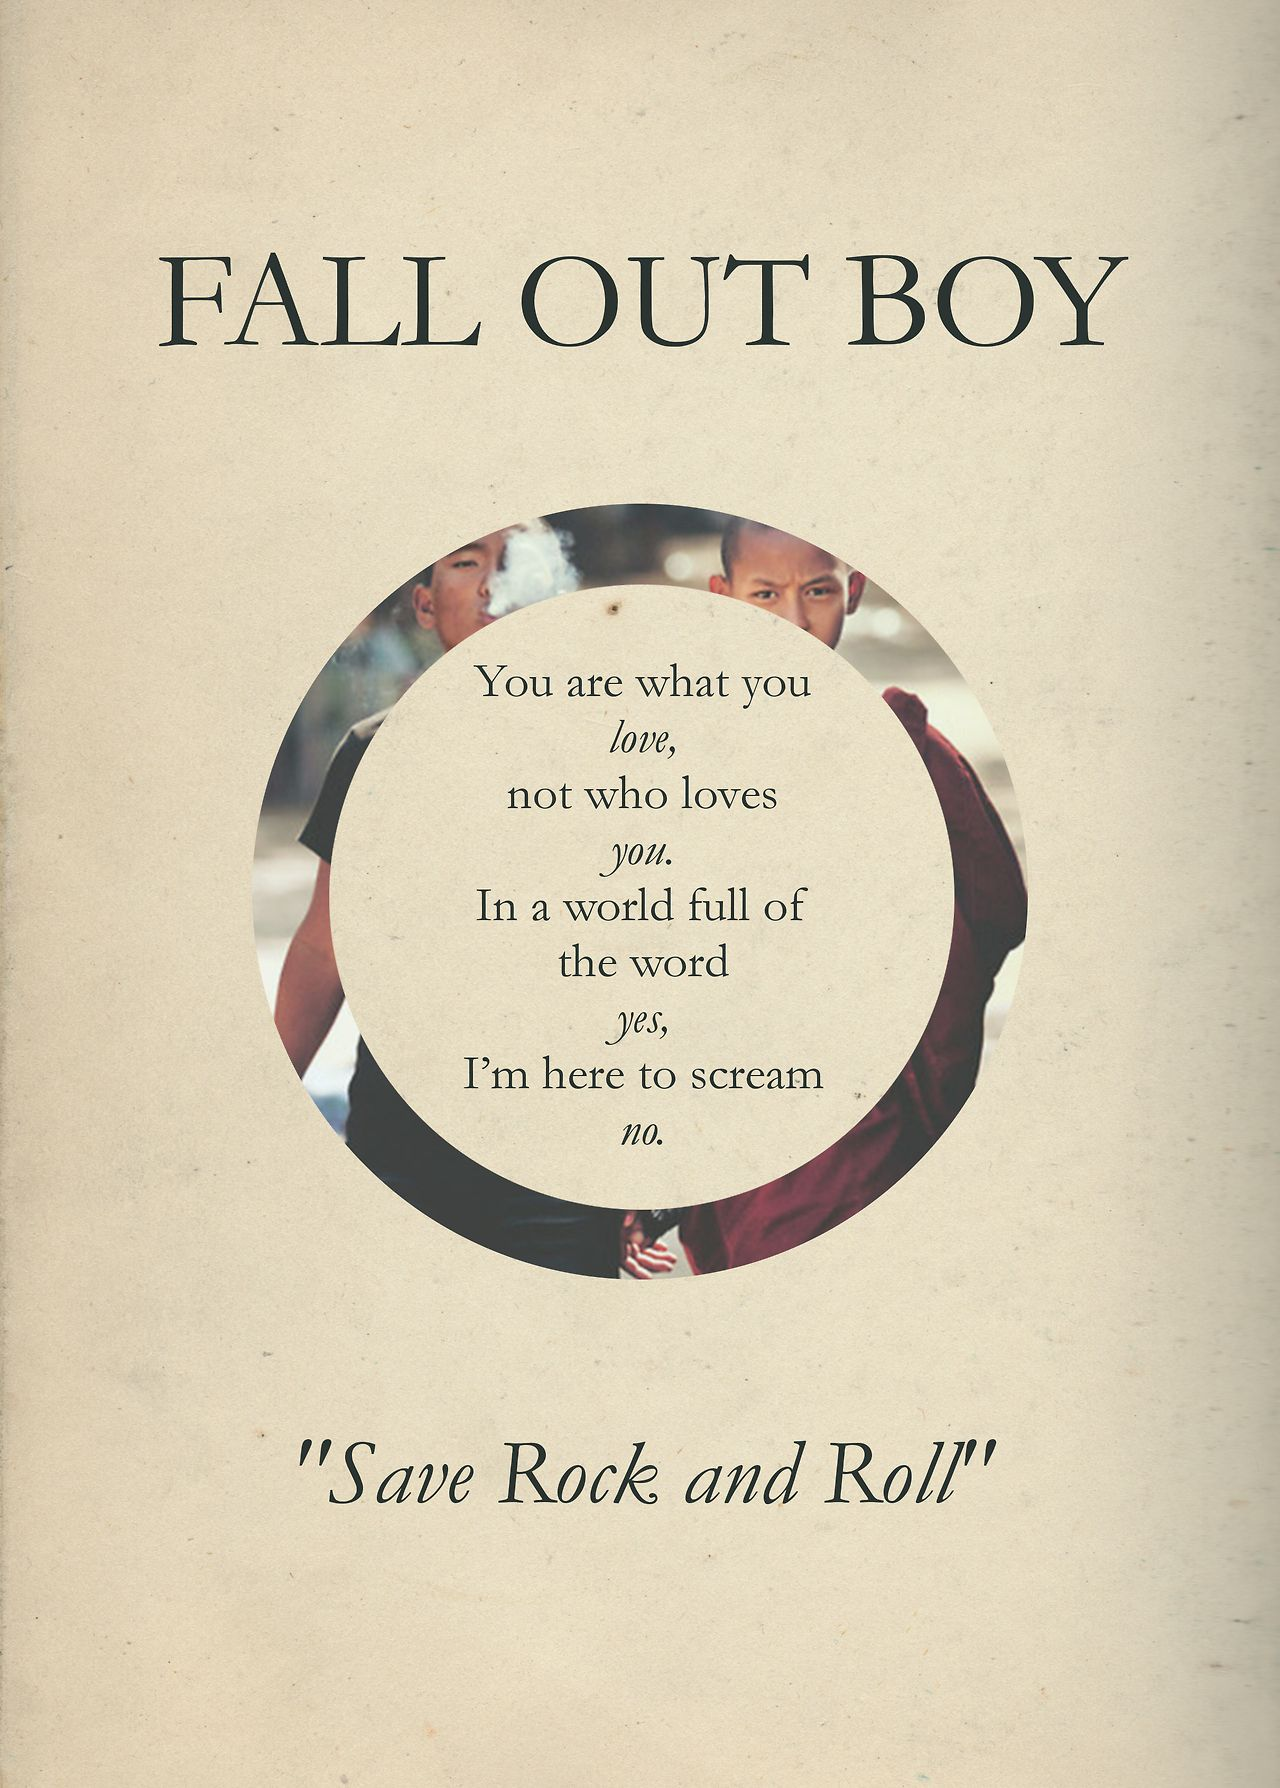 Favorite lines from this song. | Fall out boy lyrics, Fall ...